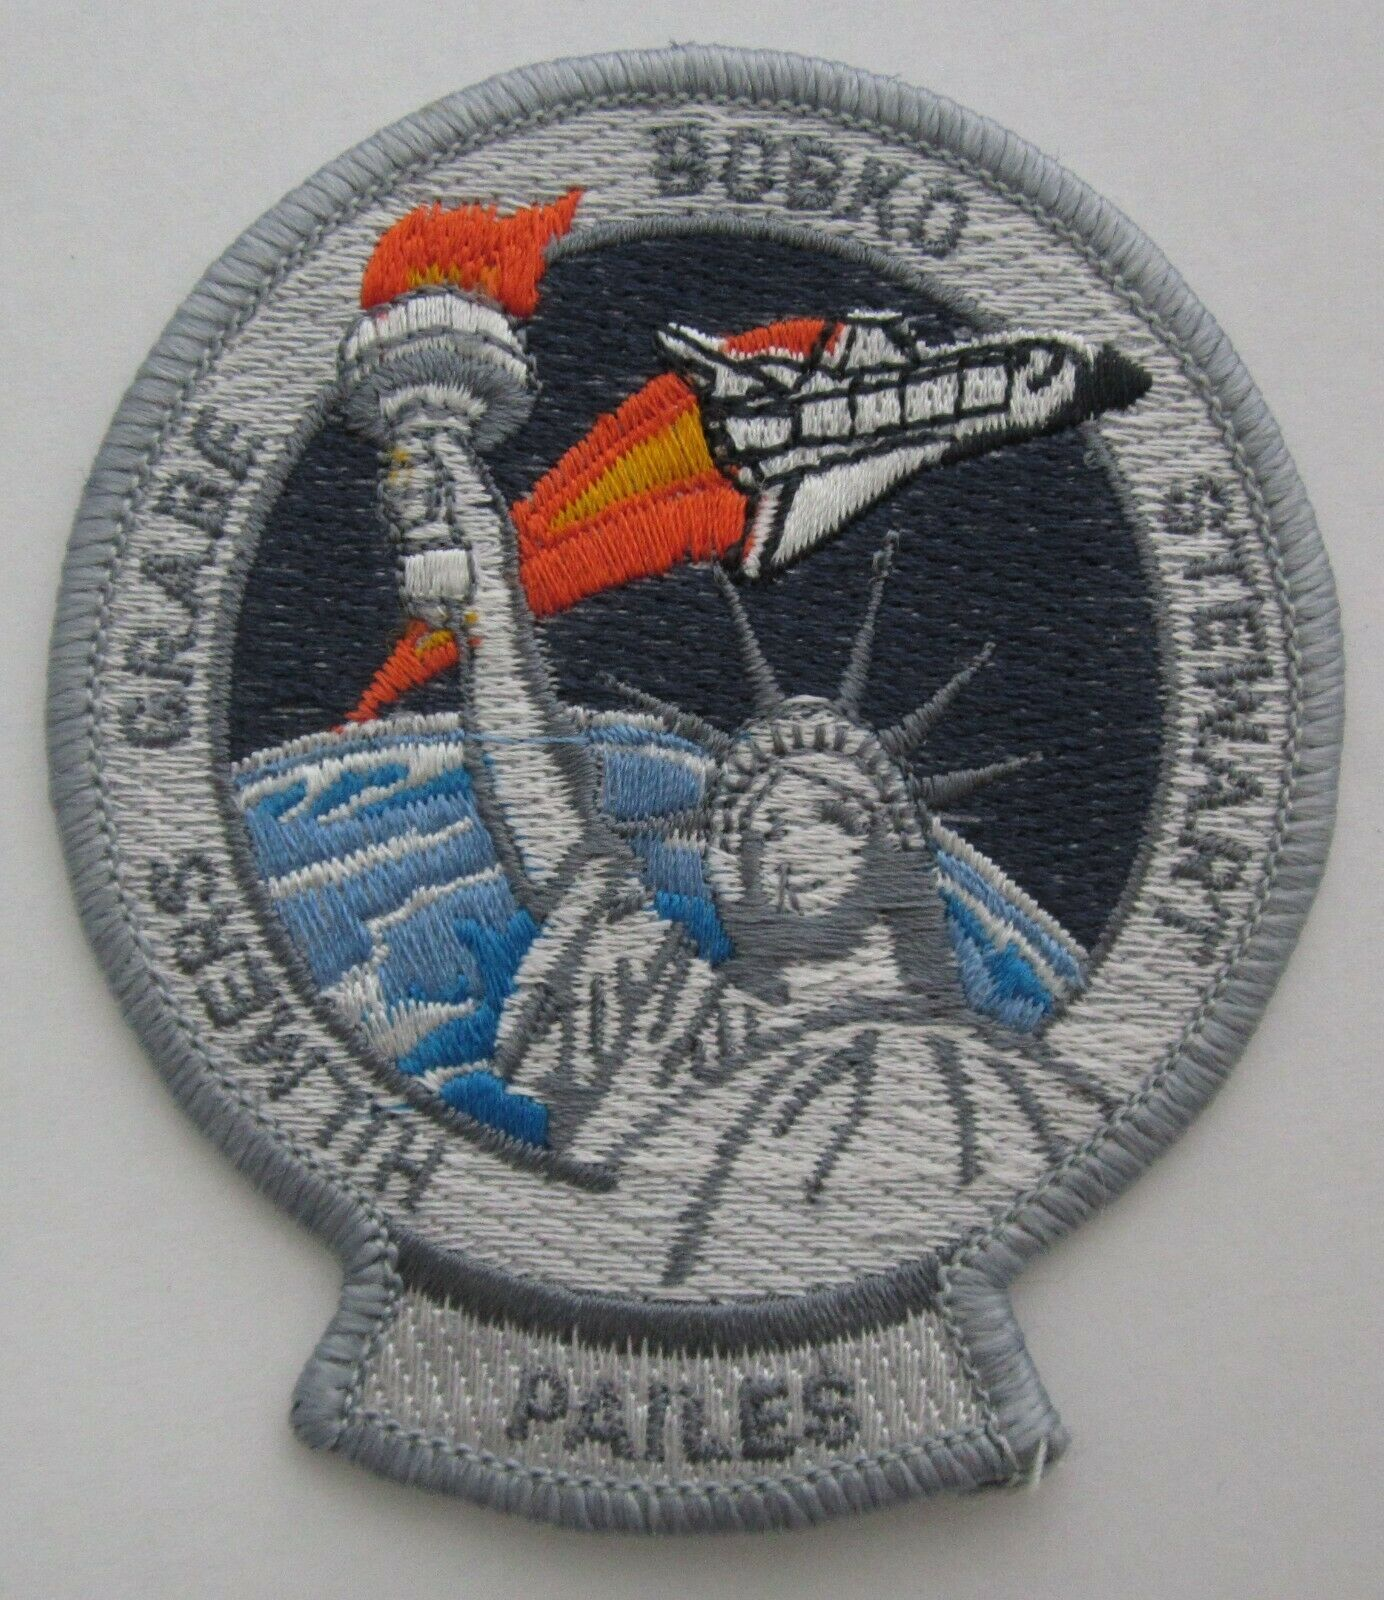 nasa patches for sale - HD1384×1600